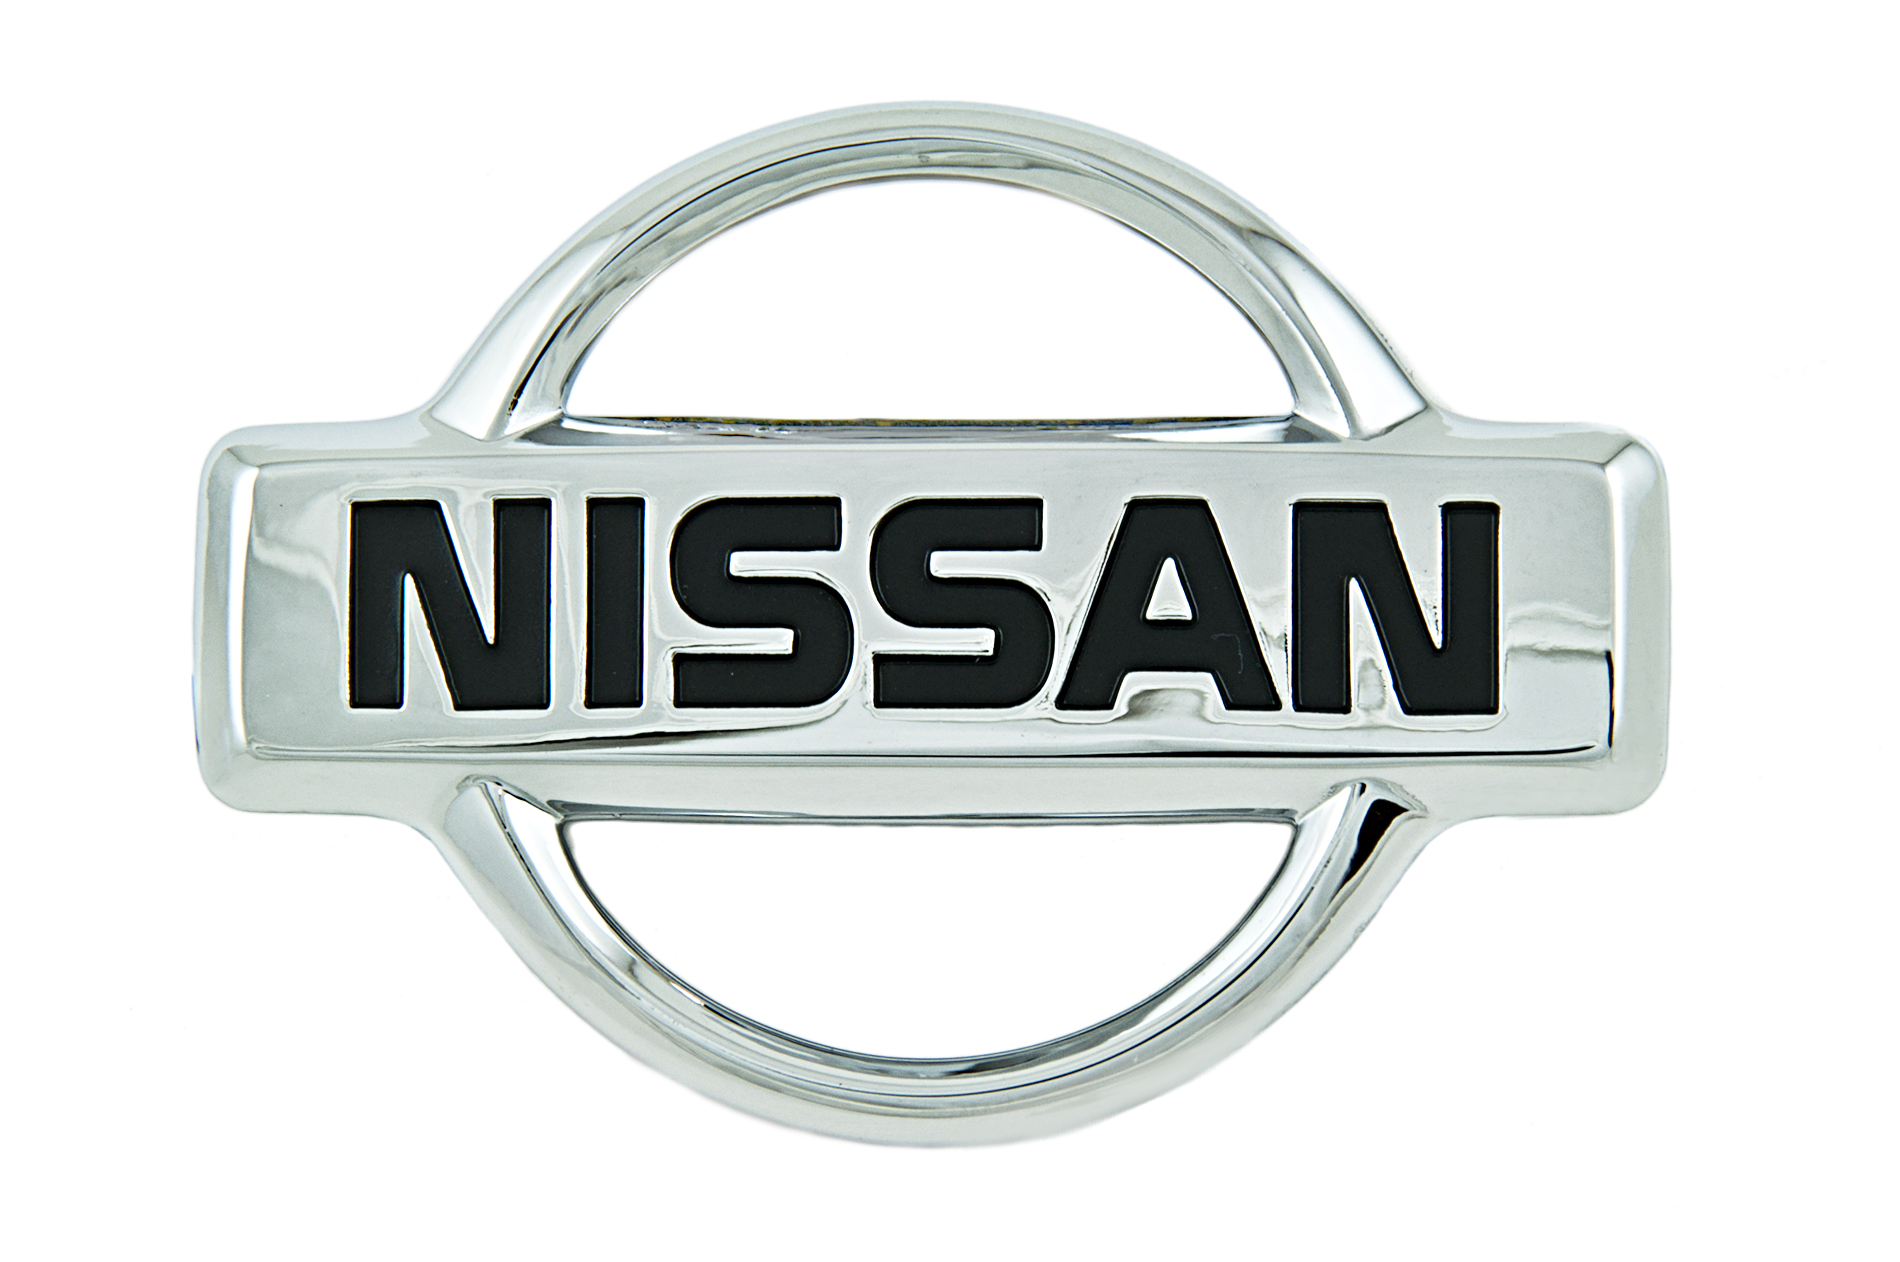 Nissan badges